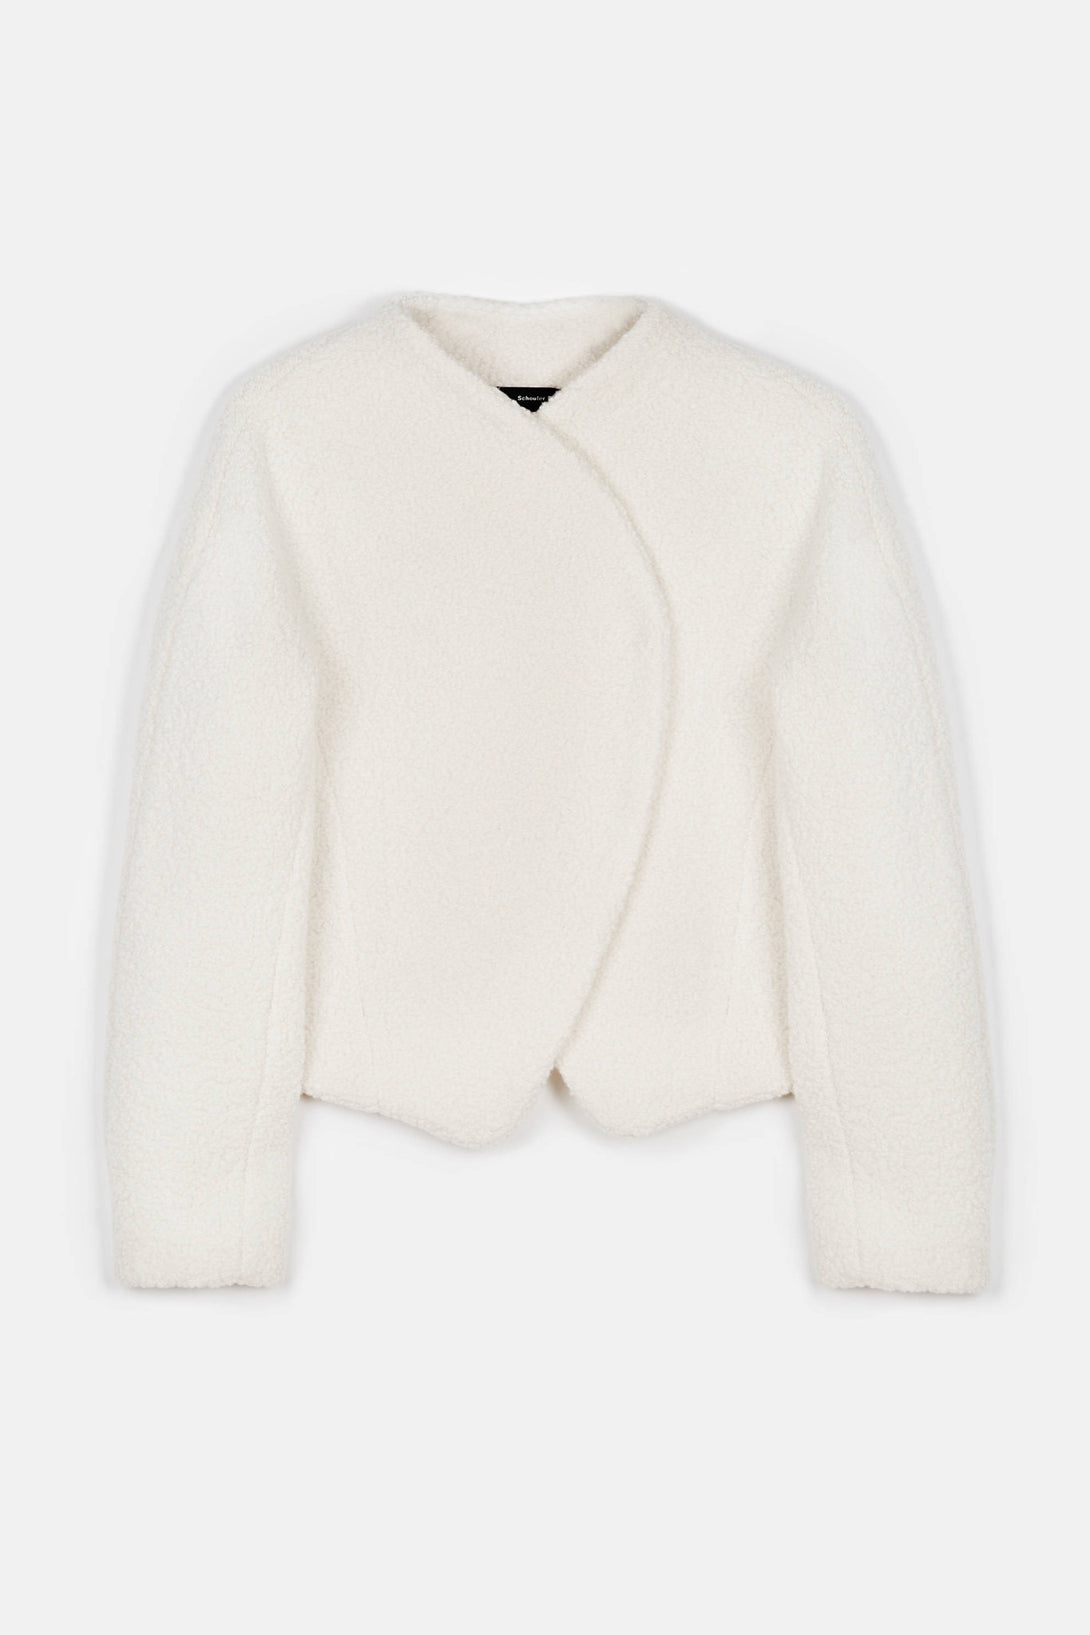 Bonded Boucle Round Jacket - Off-White